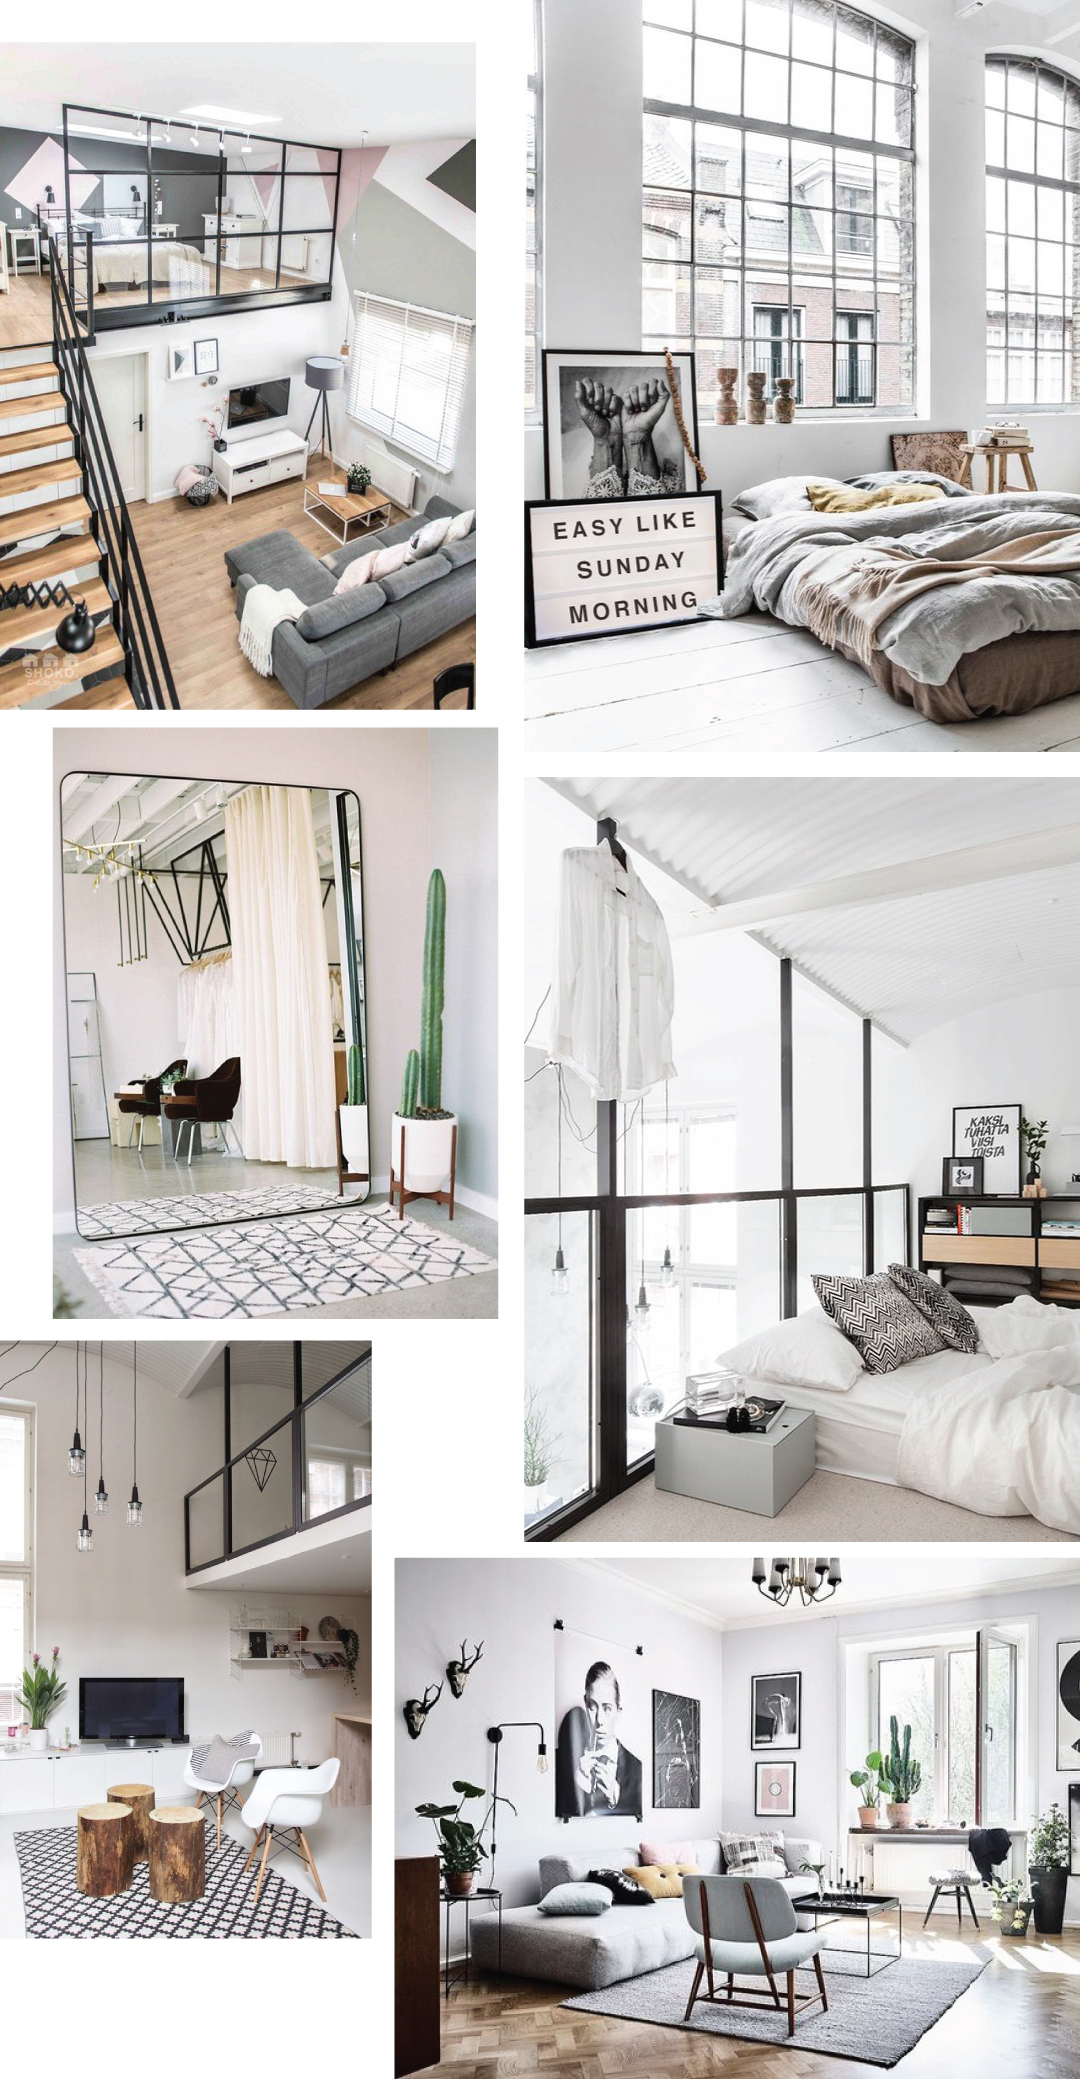 Loft Inspiration - Soophisticated